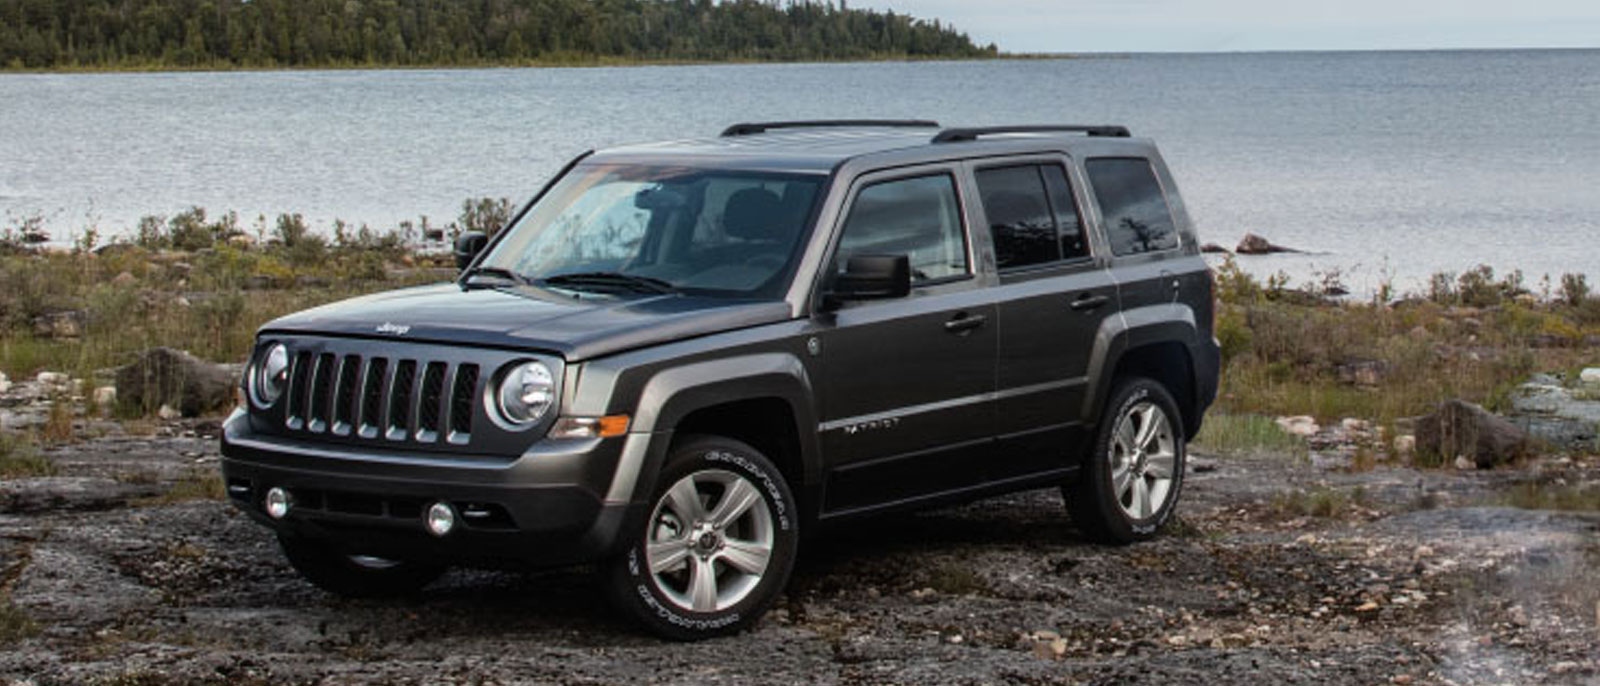 2017 jeep patriot jeep patriot amazing deals this month. Black Bedroom Furniture Sets. Home Design Ideas